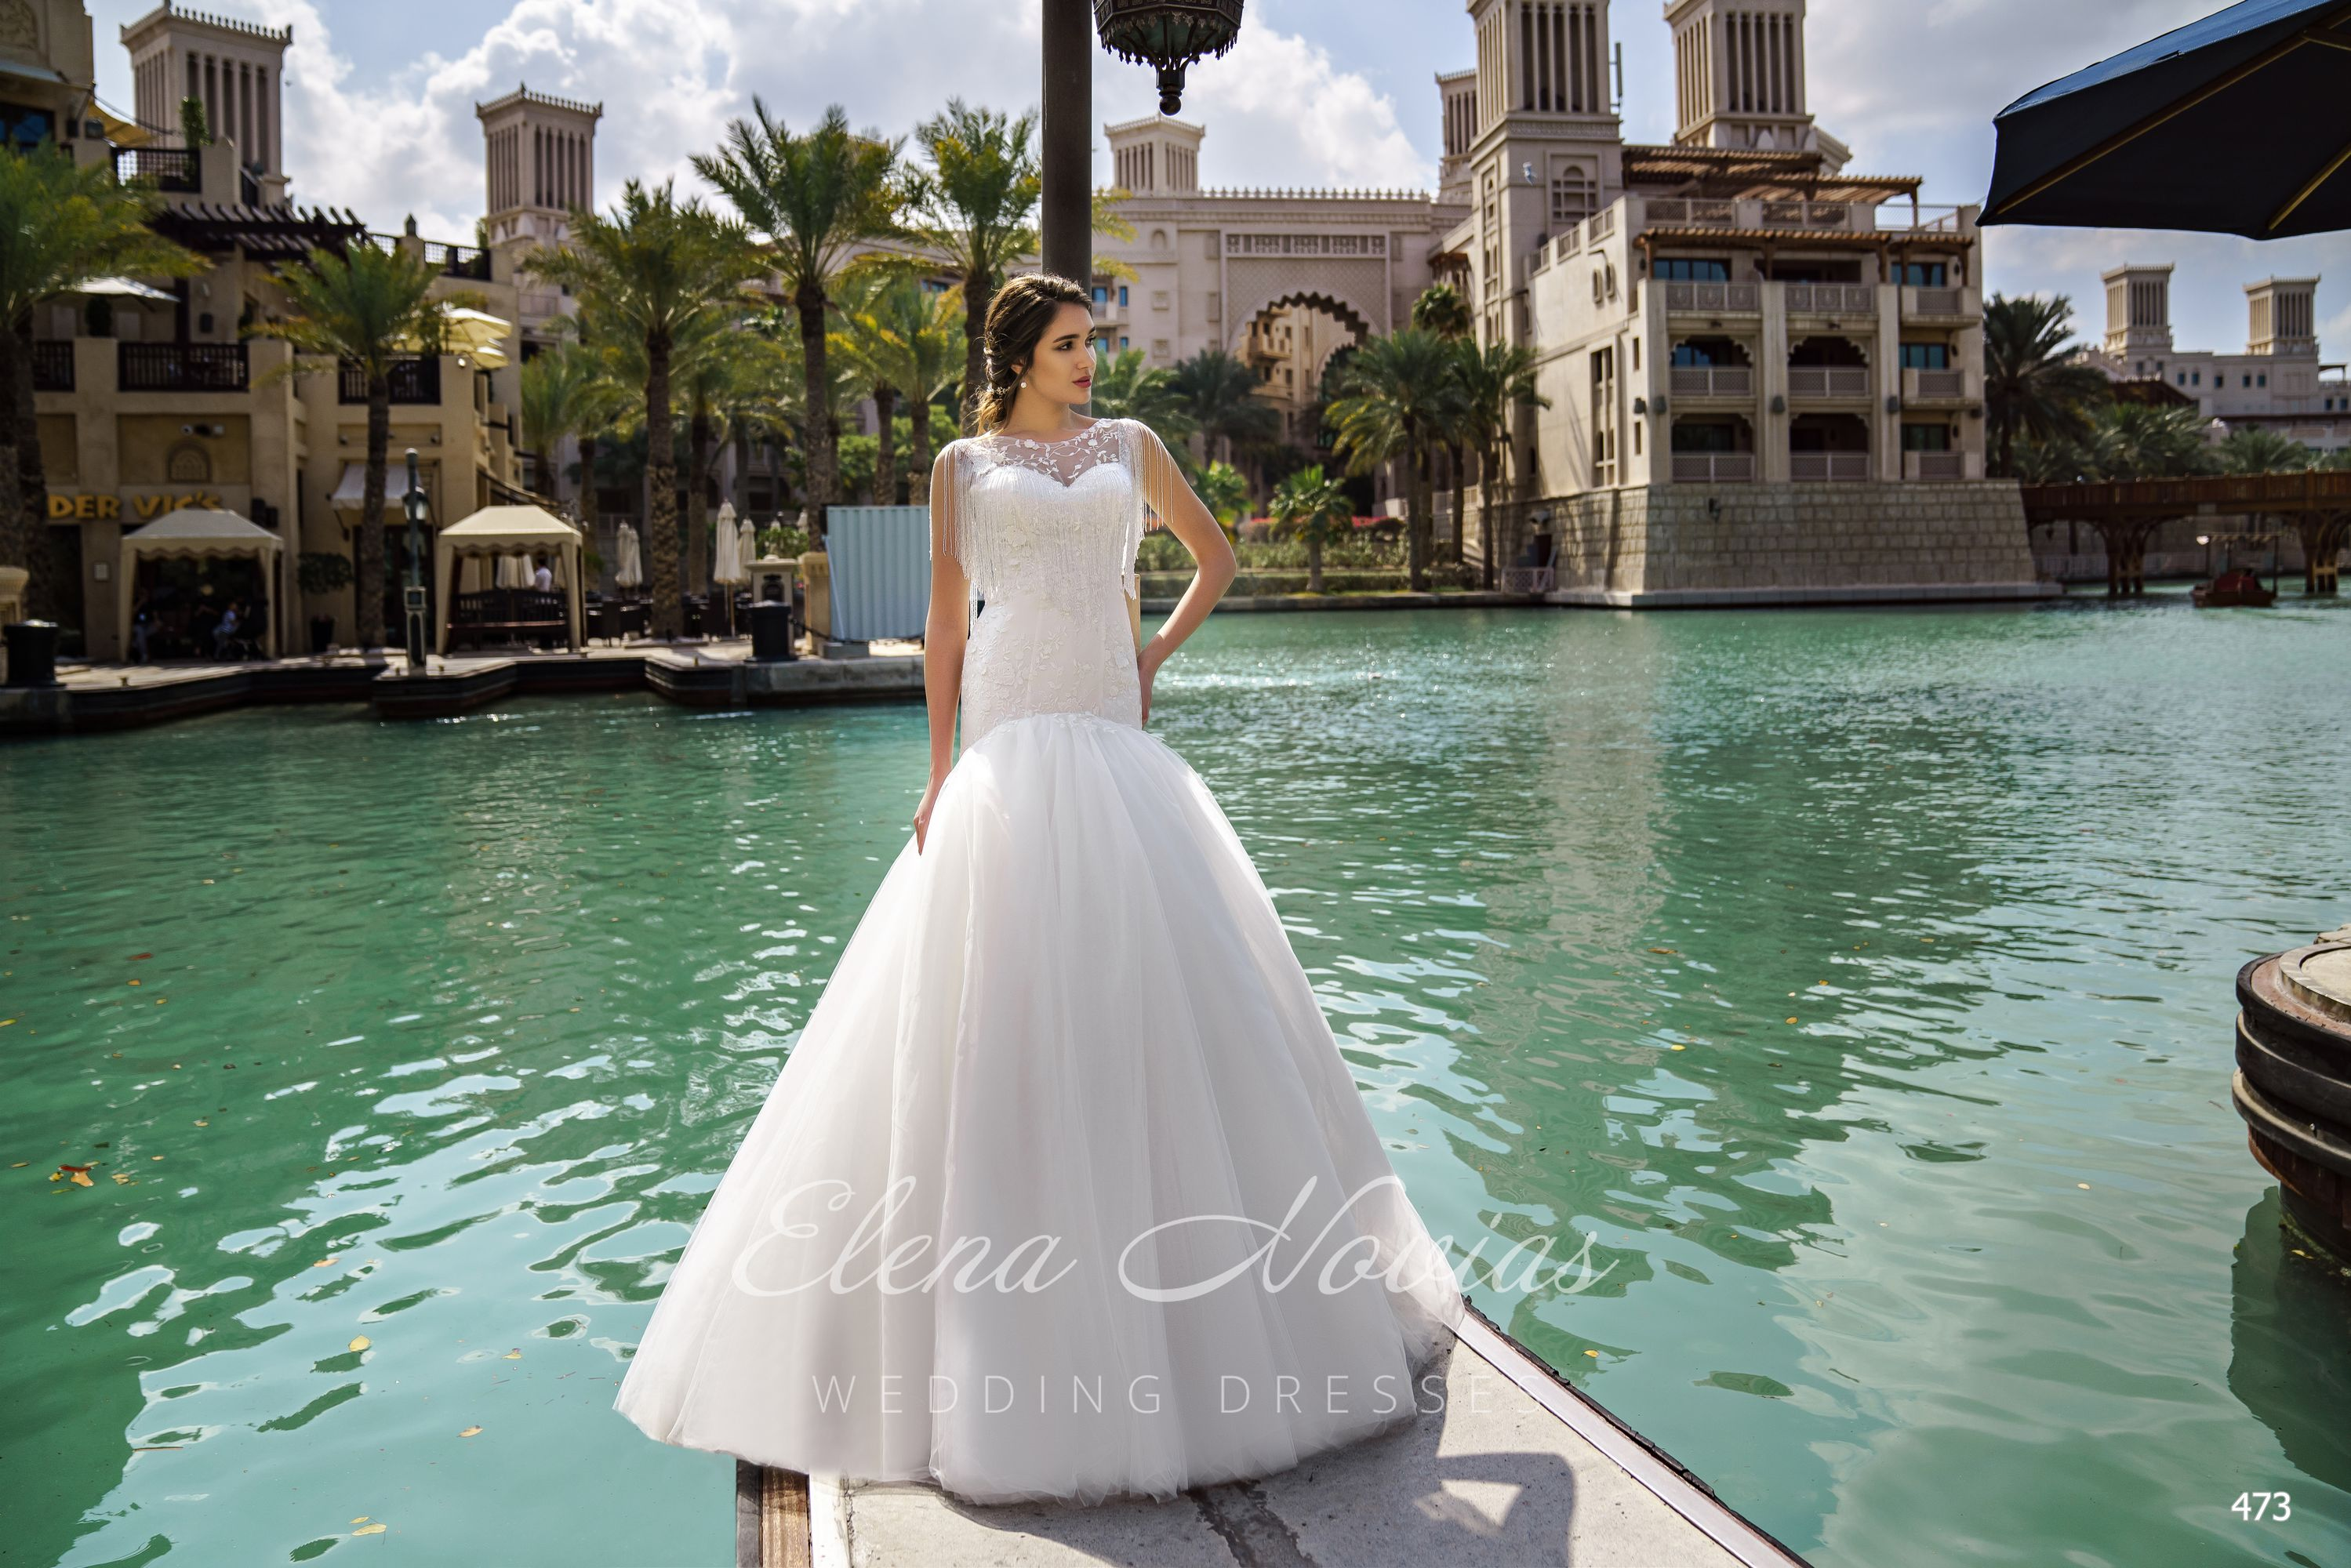 Wedding dresses 473 1